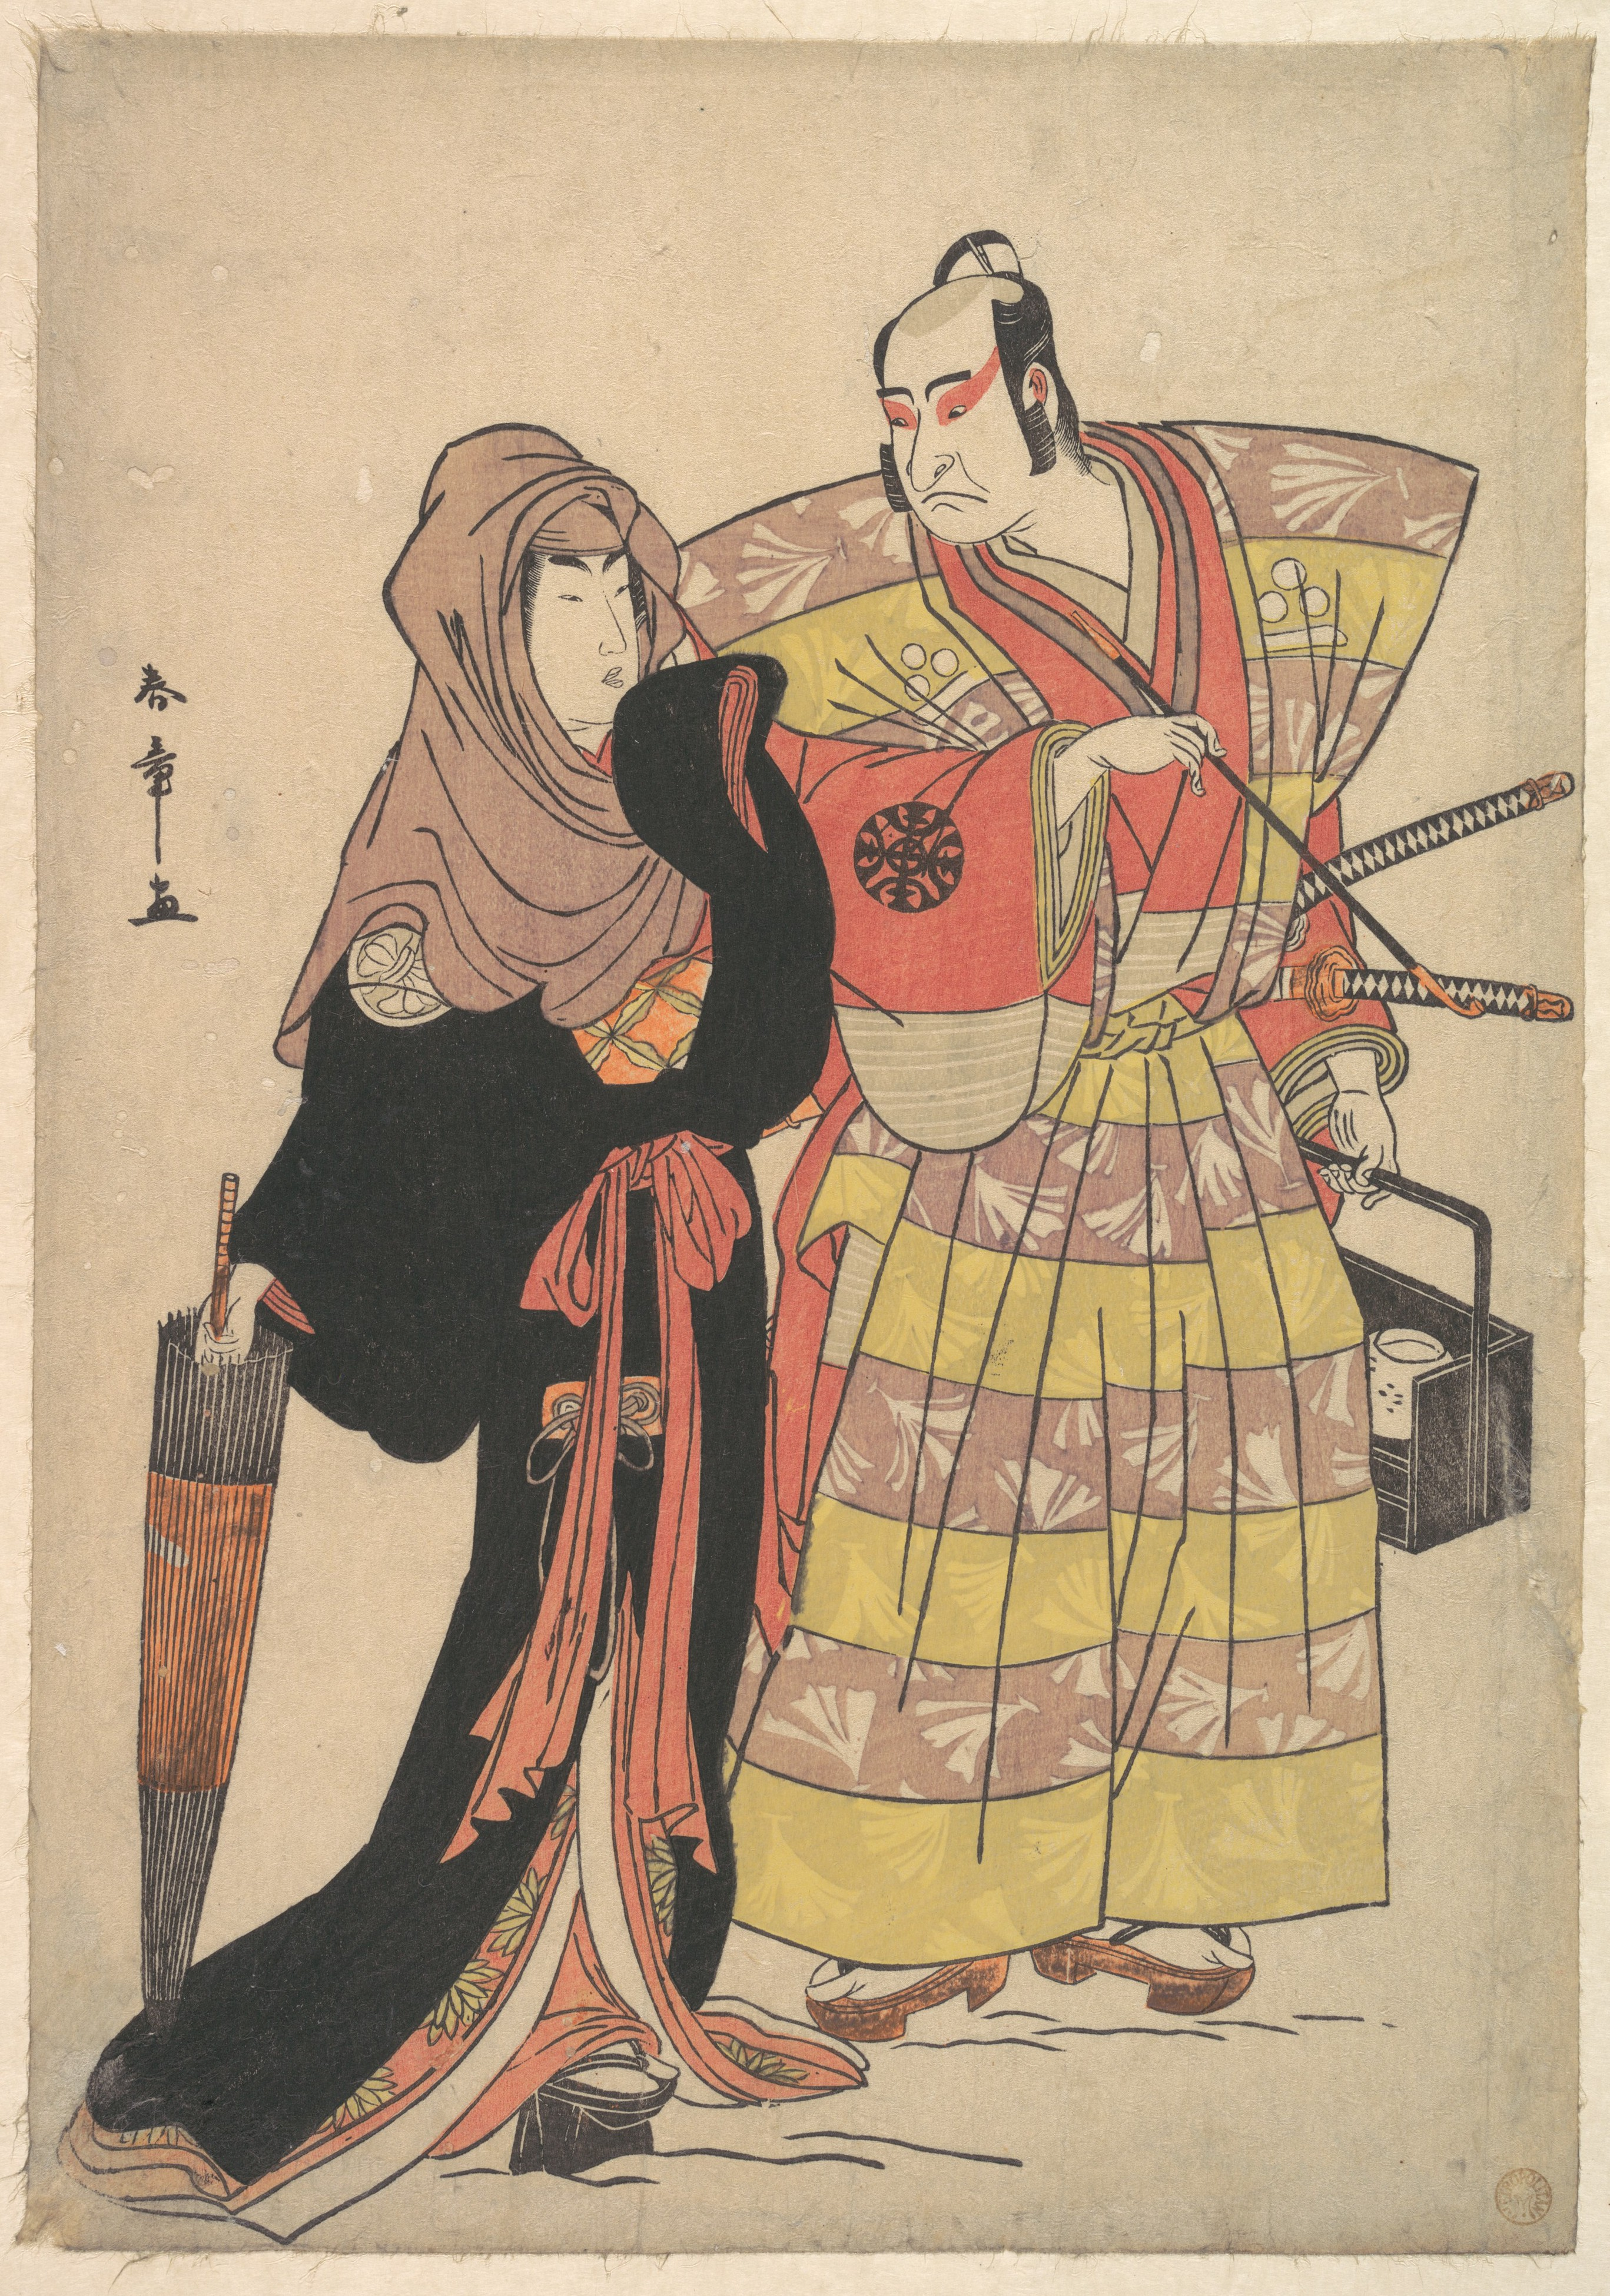 Scene from a Drama c1778 by Shunsho